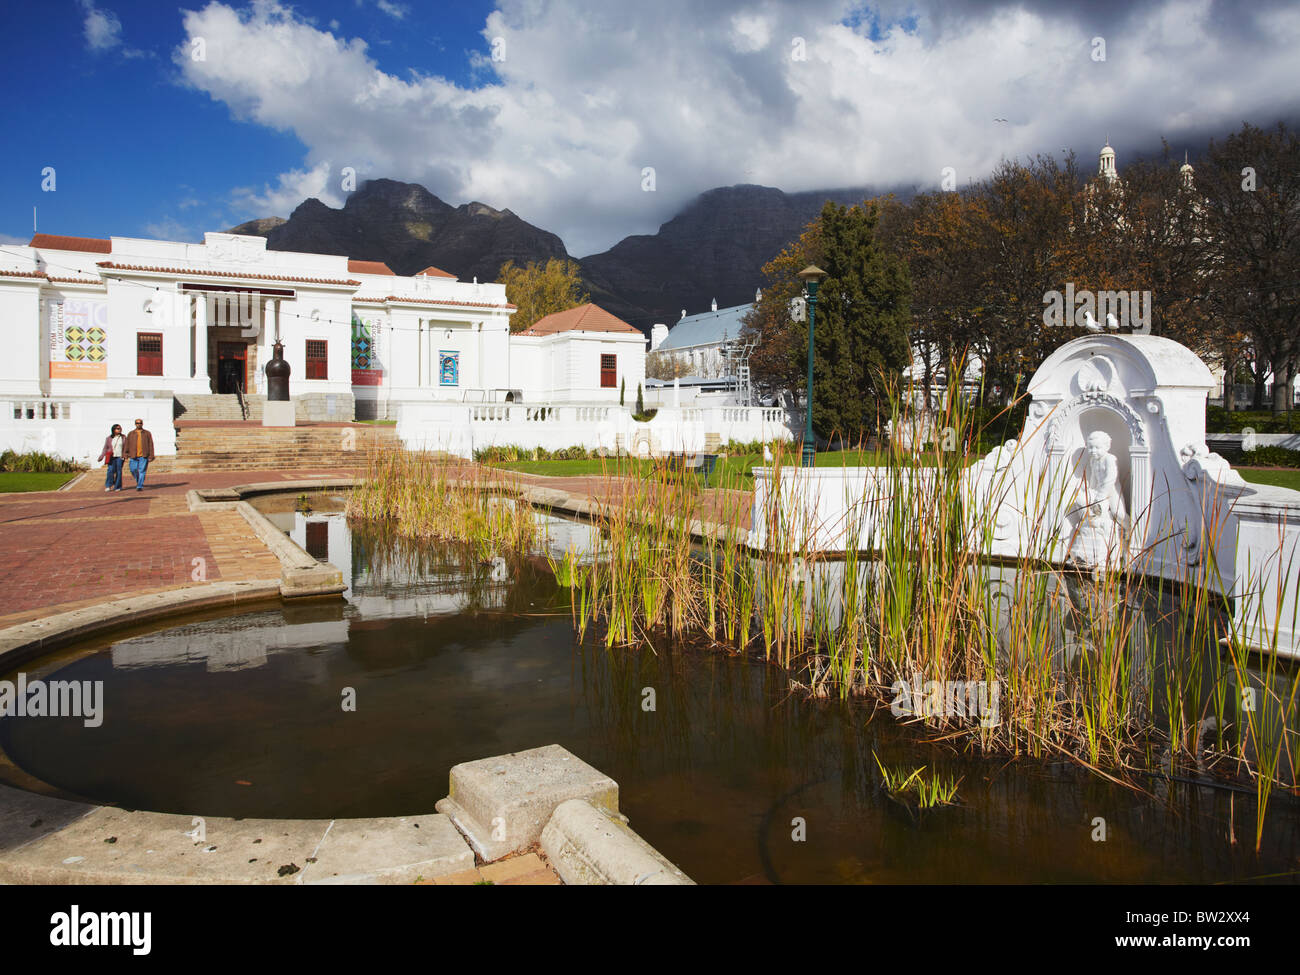 National Gallery, Company's Gardens, City Bowl, Cape Town, Western Cape, South Africa Stock Photo